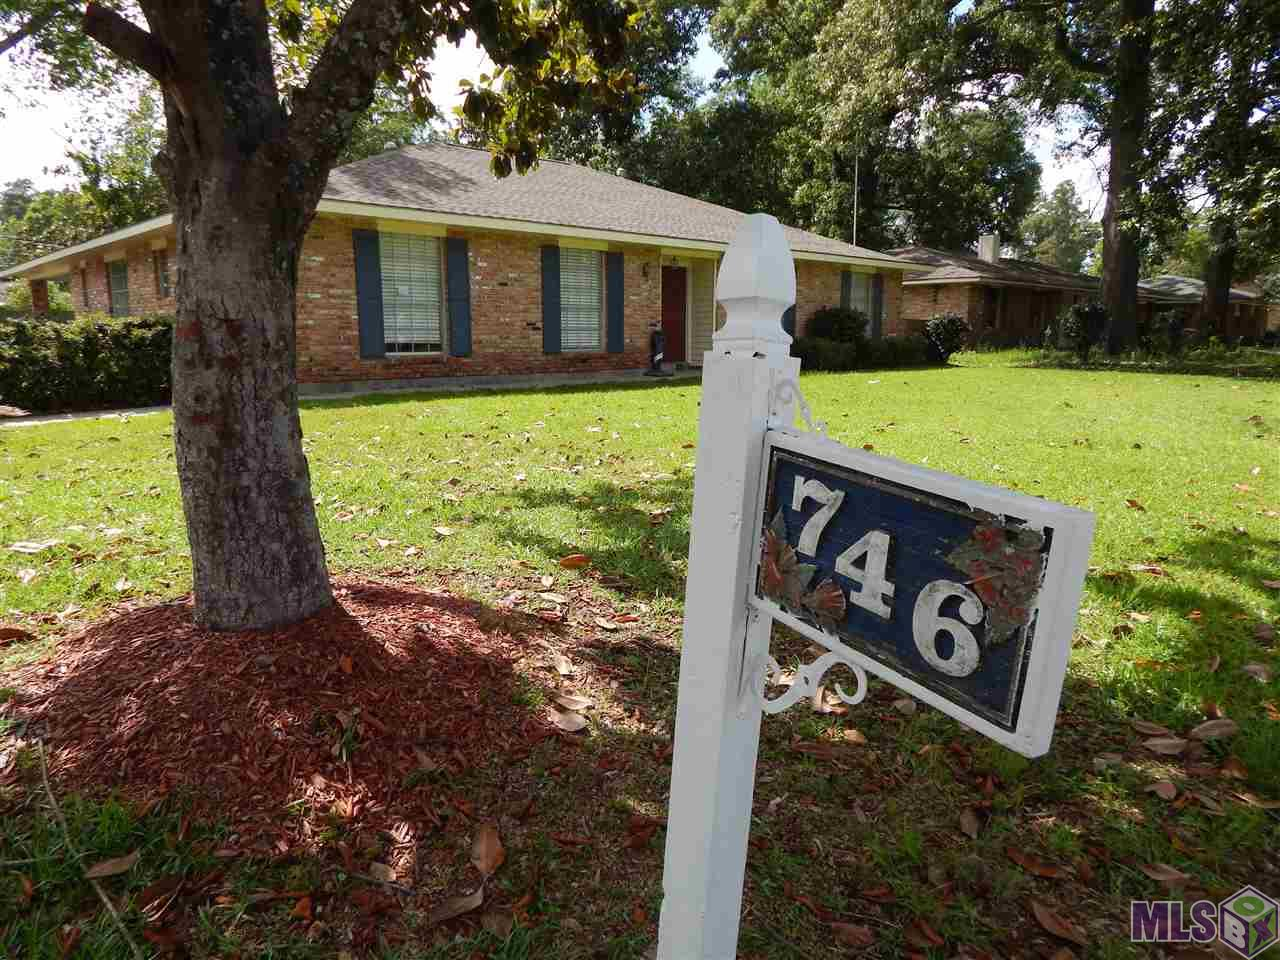 746 SHERWOOD FOREST BLVD, Baton Rouge, LA 70815